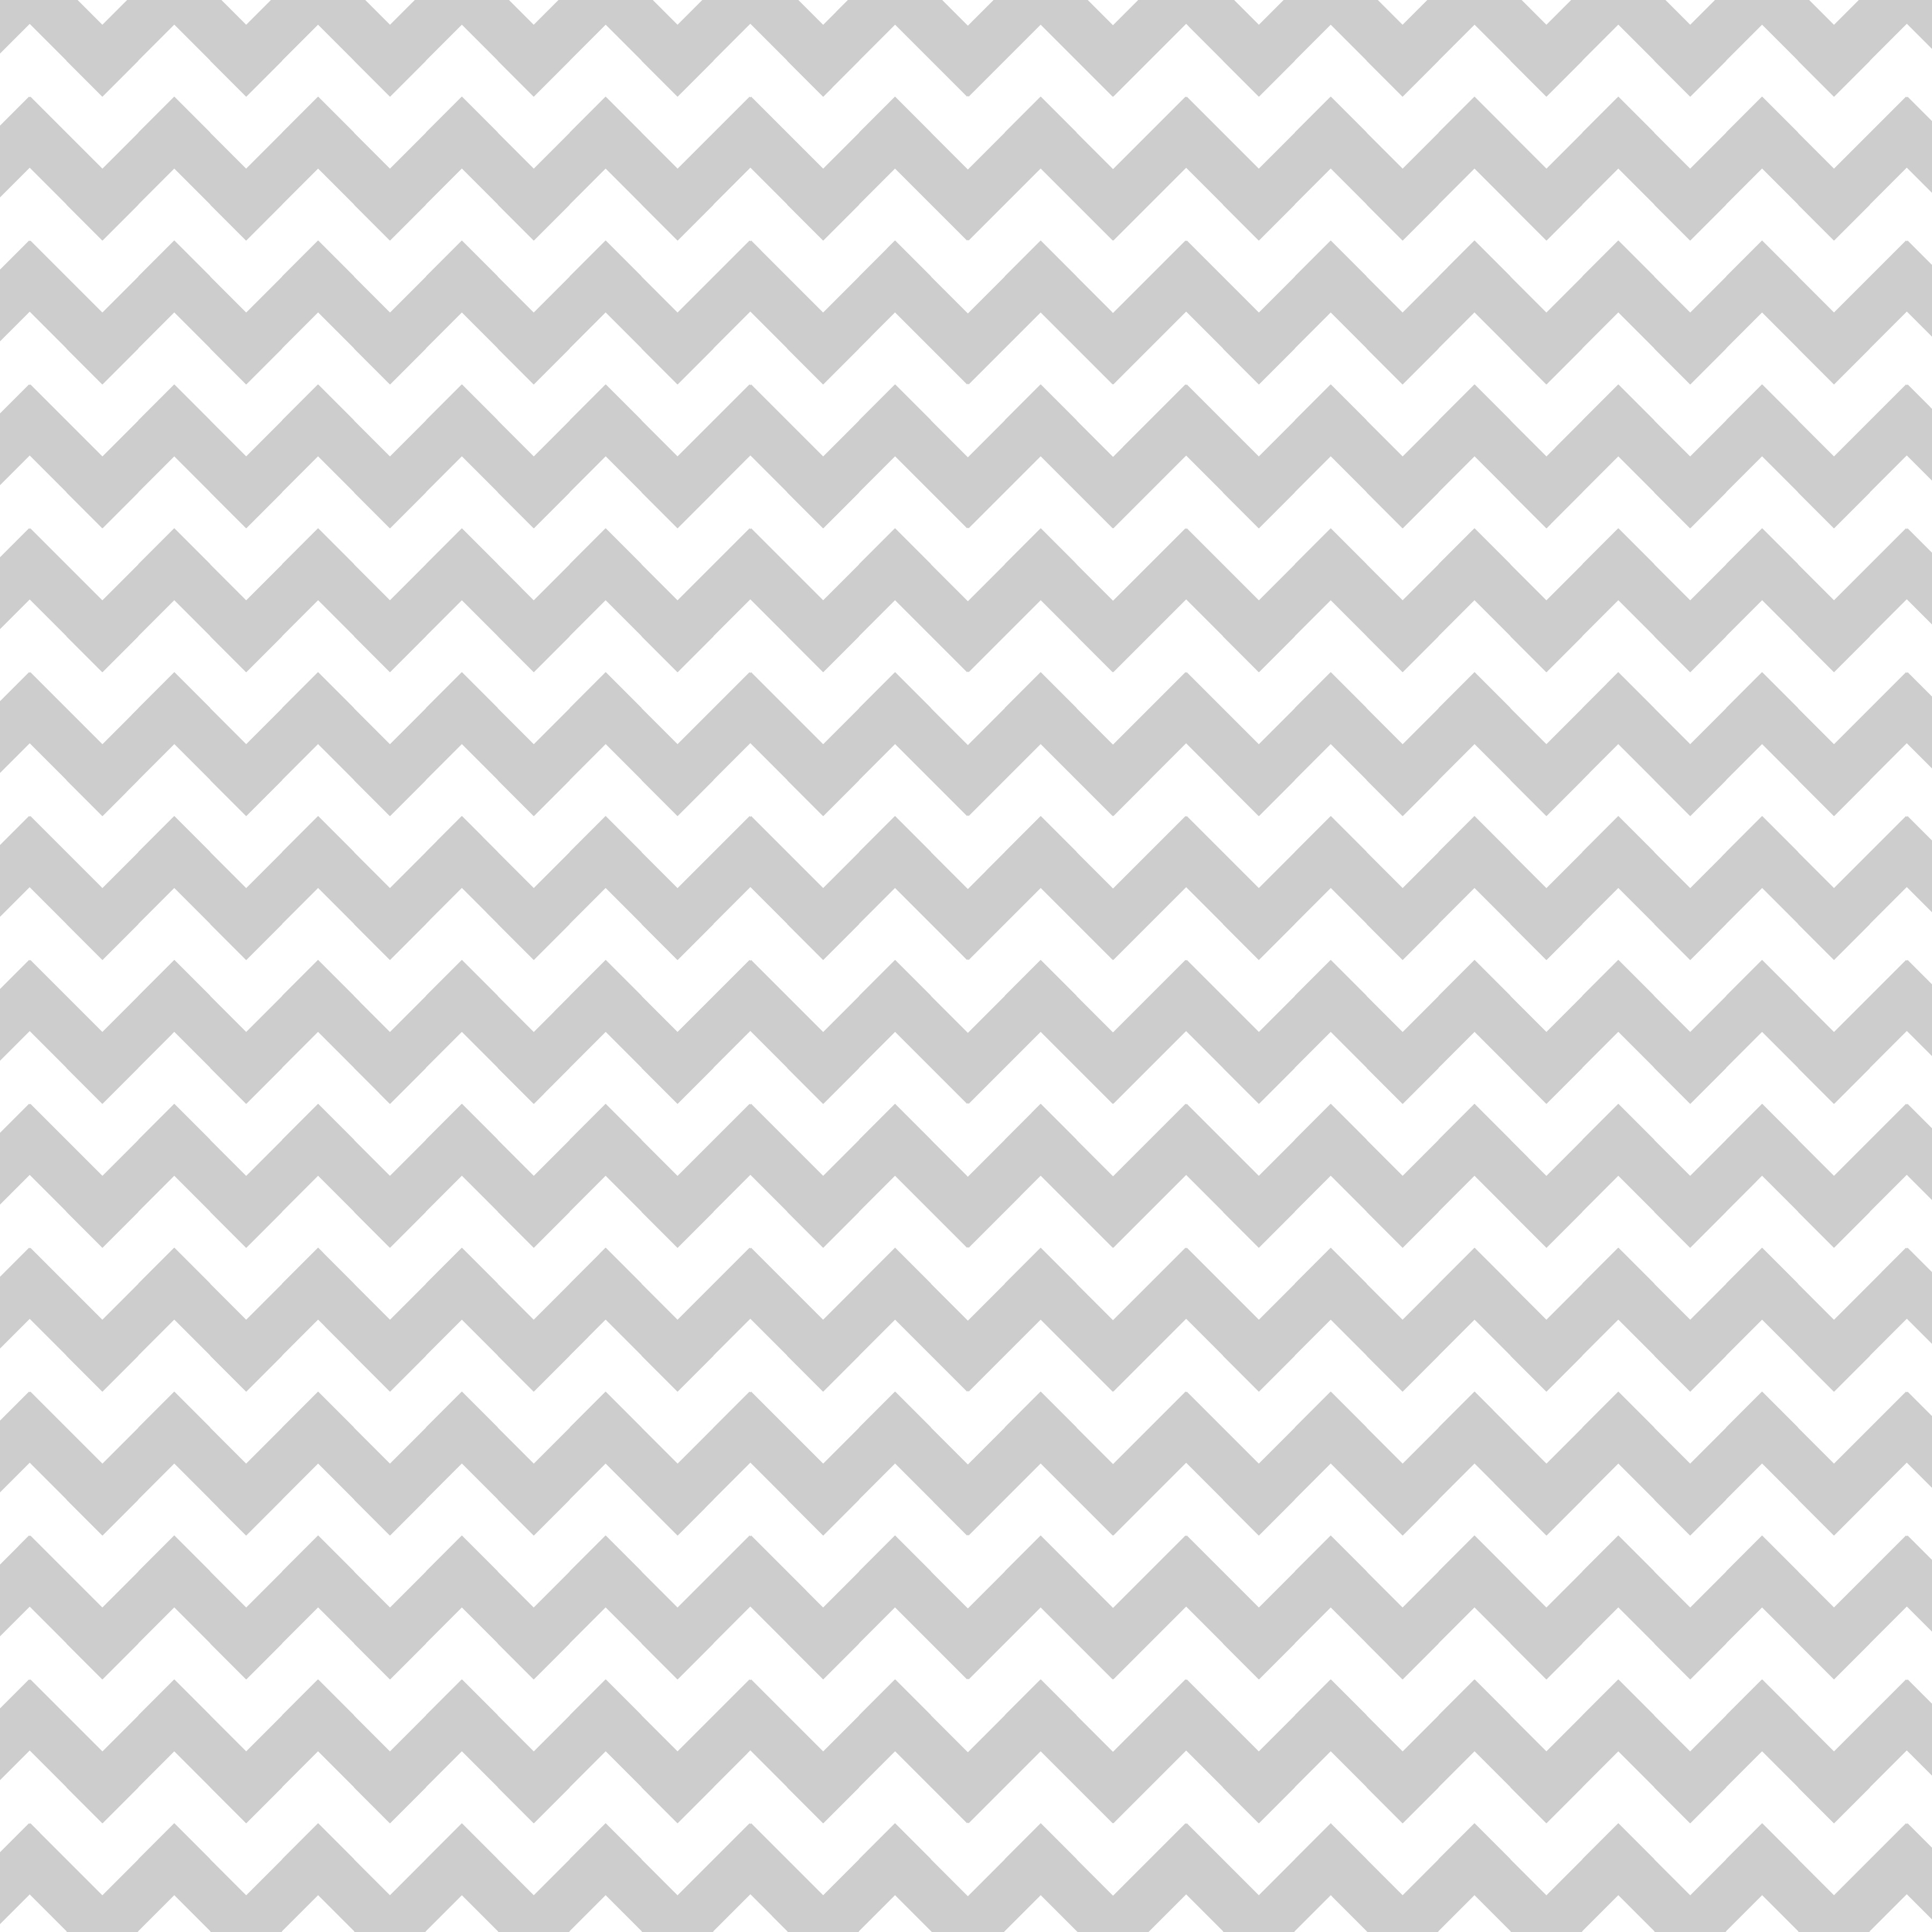 Chevron Digital Paper Download 3600x3600